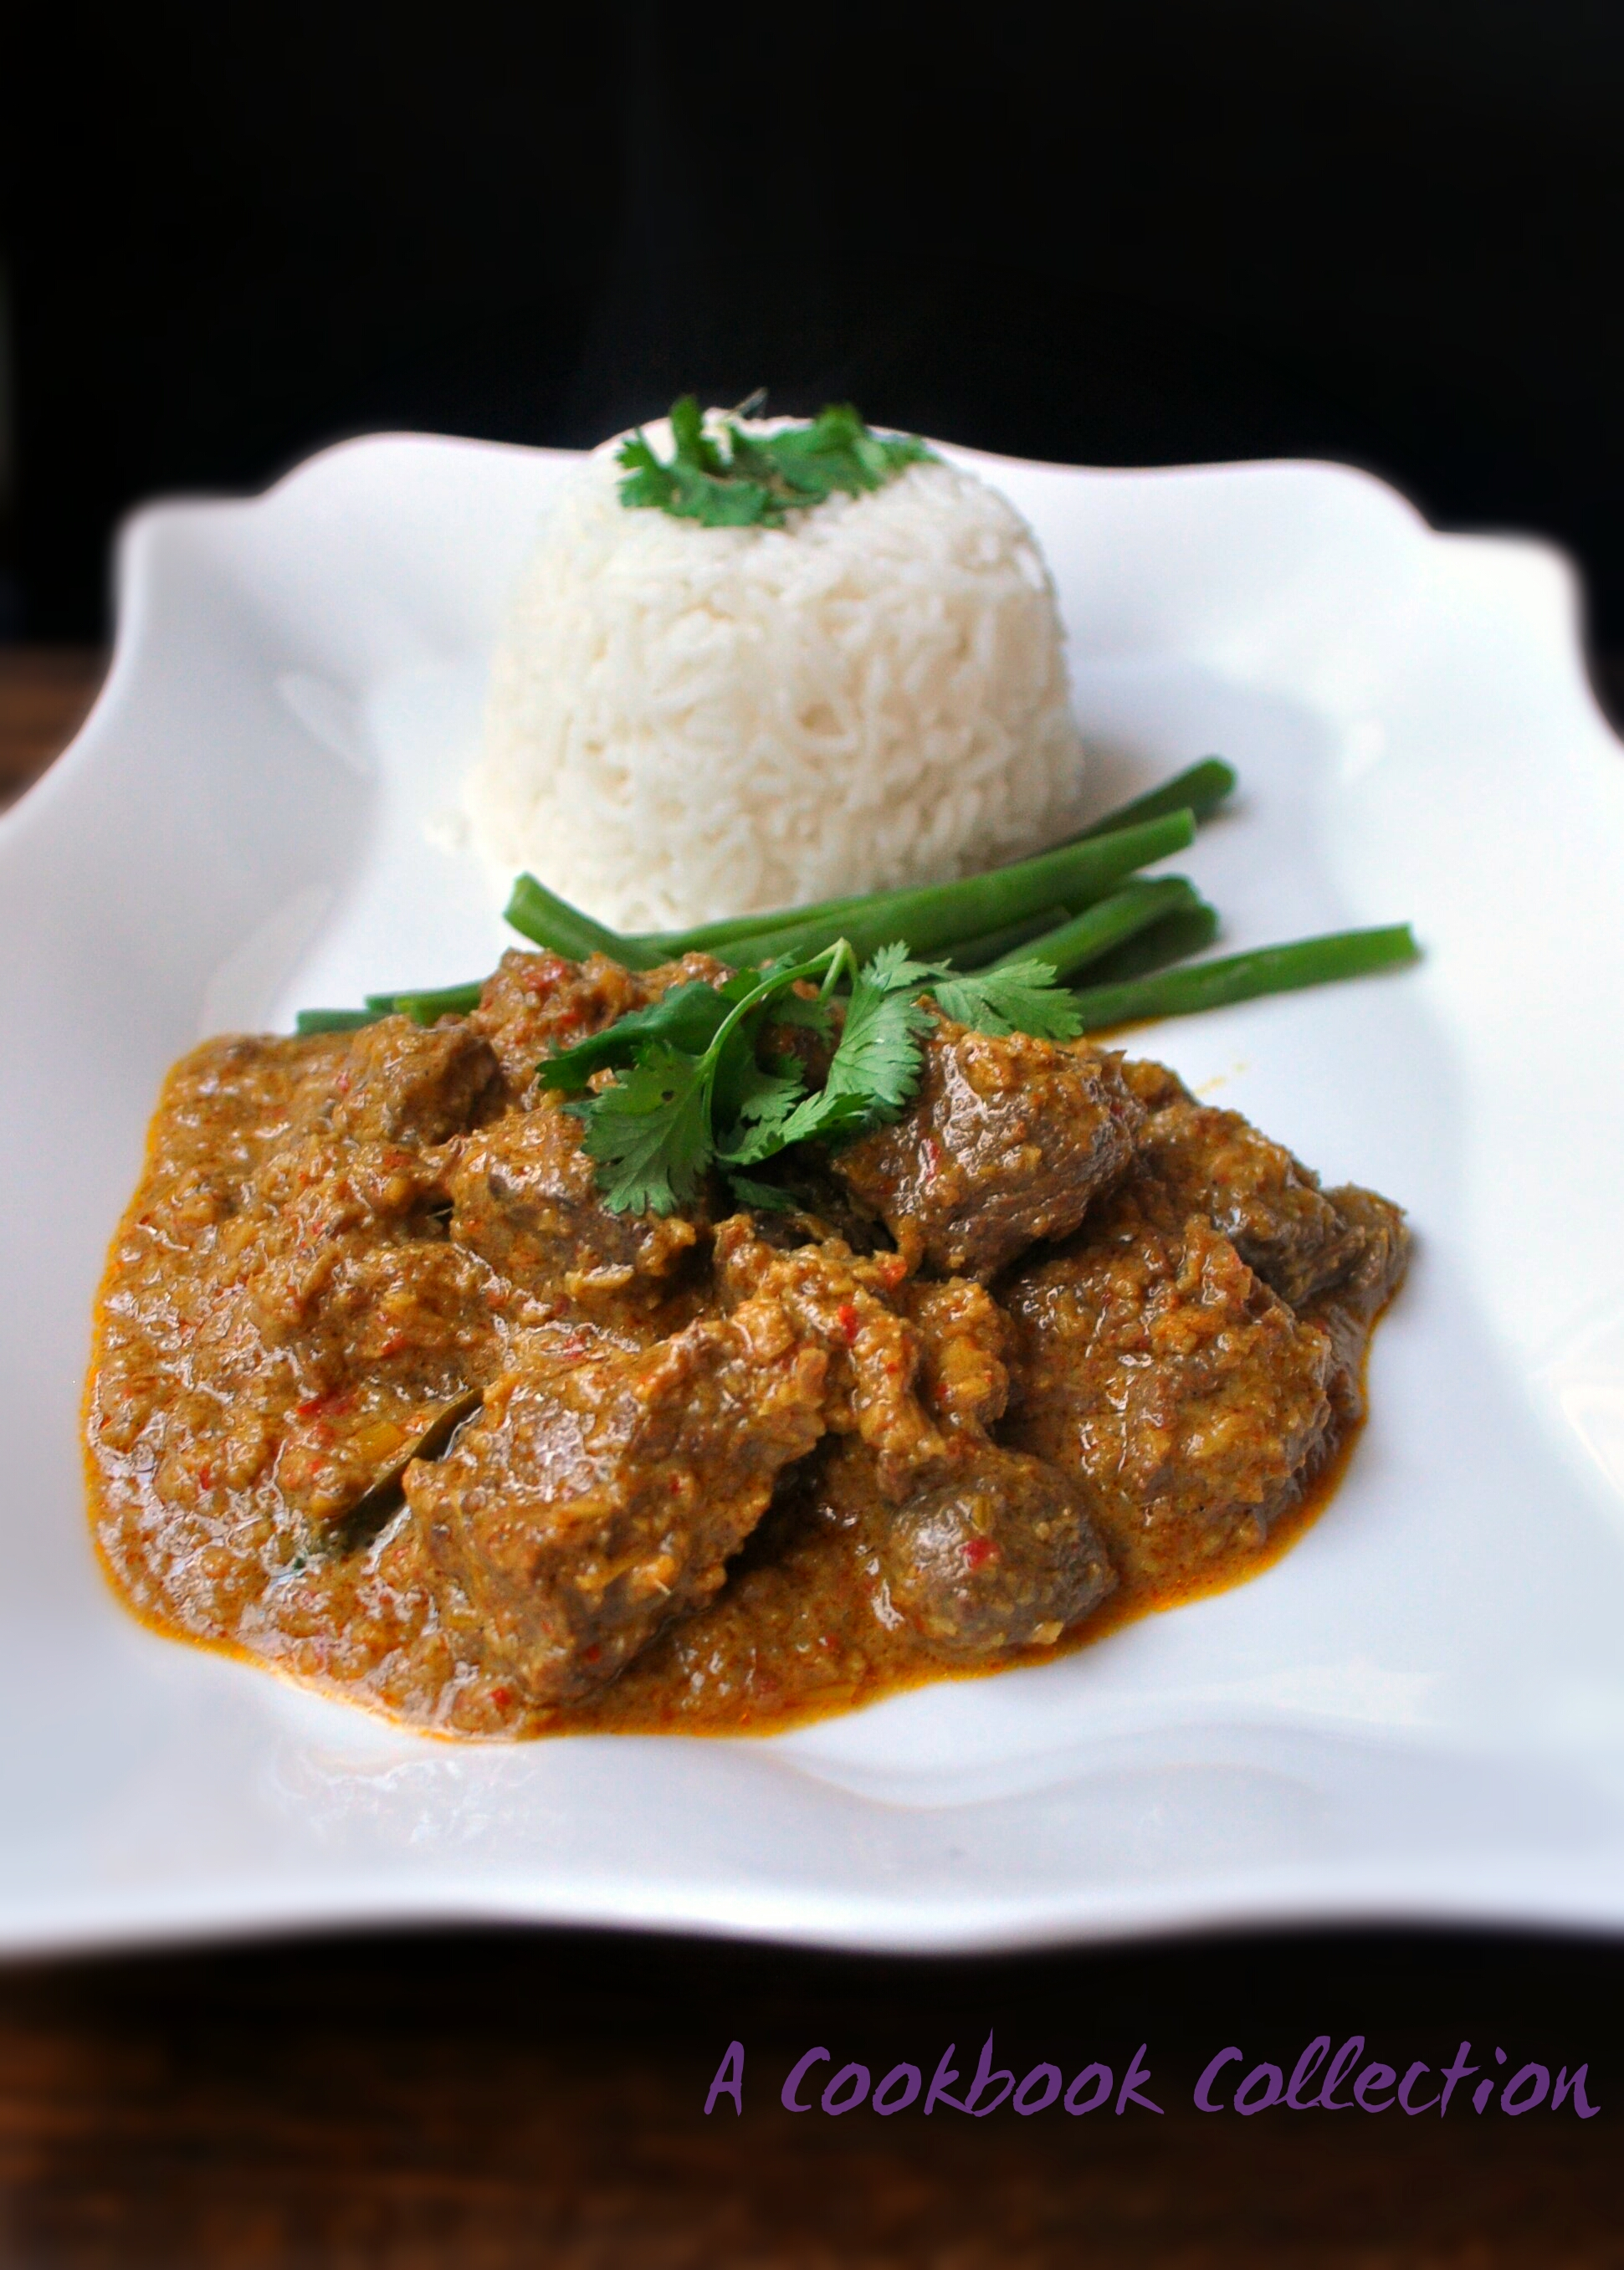 Beef Rendang - A Cookbook Collection